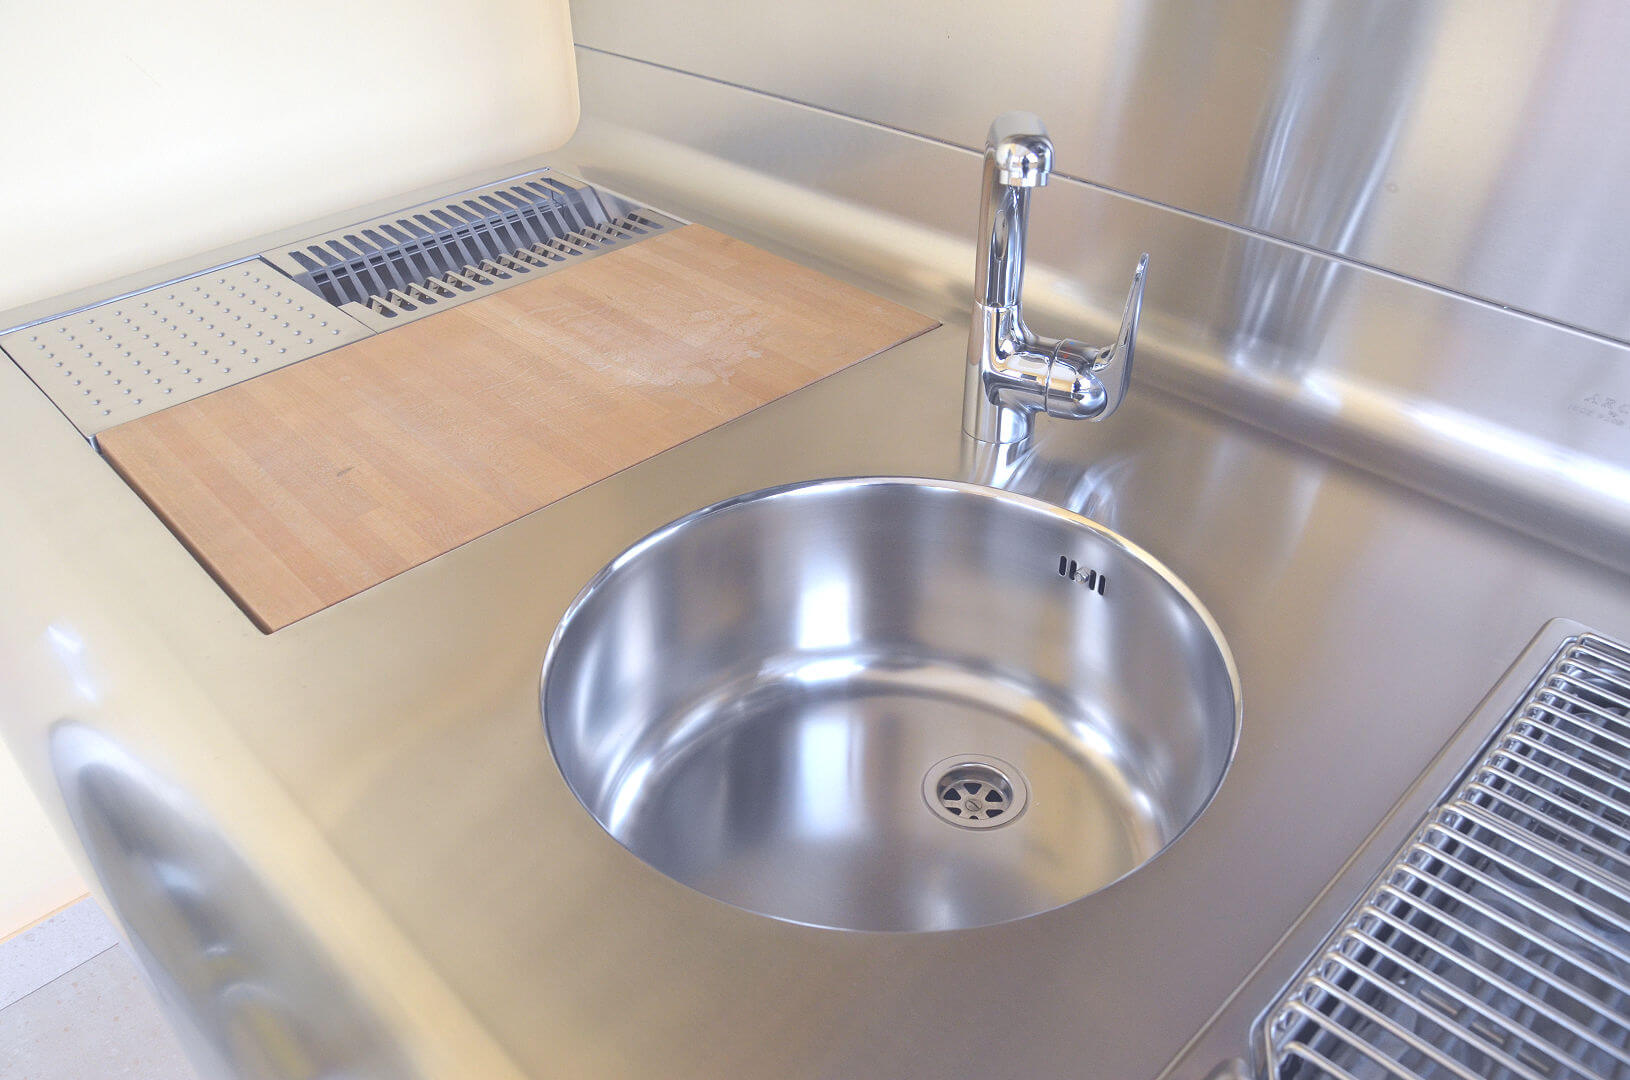 Arca Cucine Italy - Domestic stainless steel kitchens - Yacth - Sink